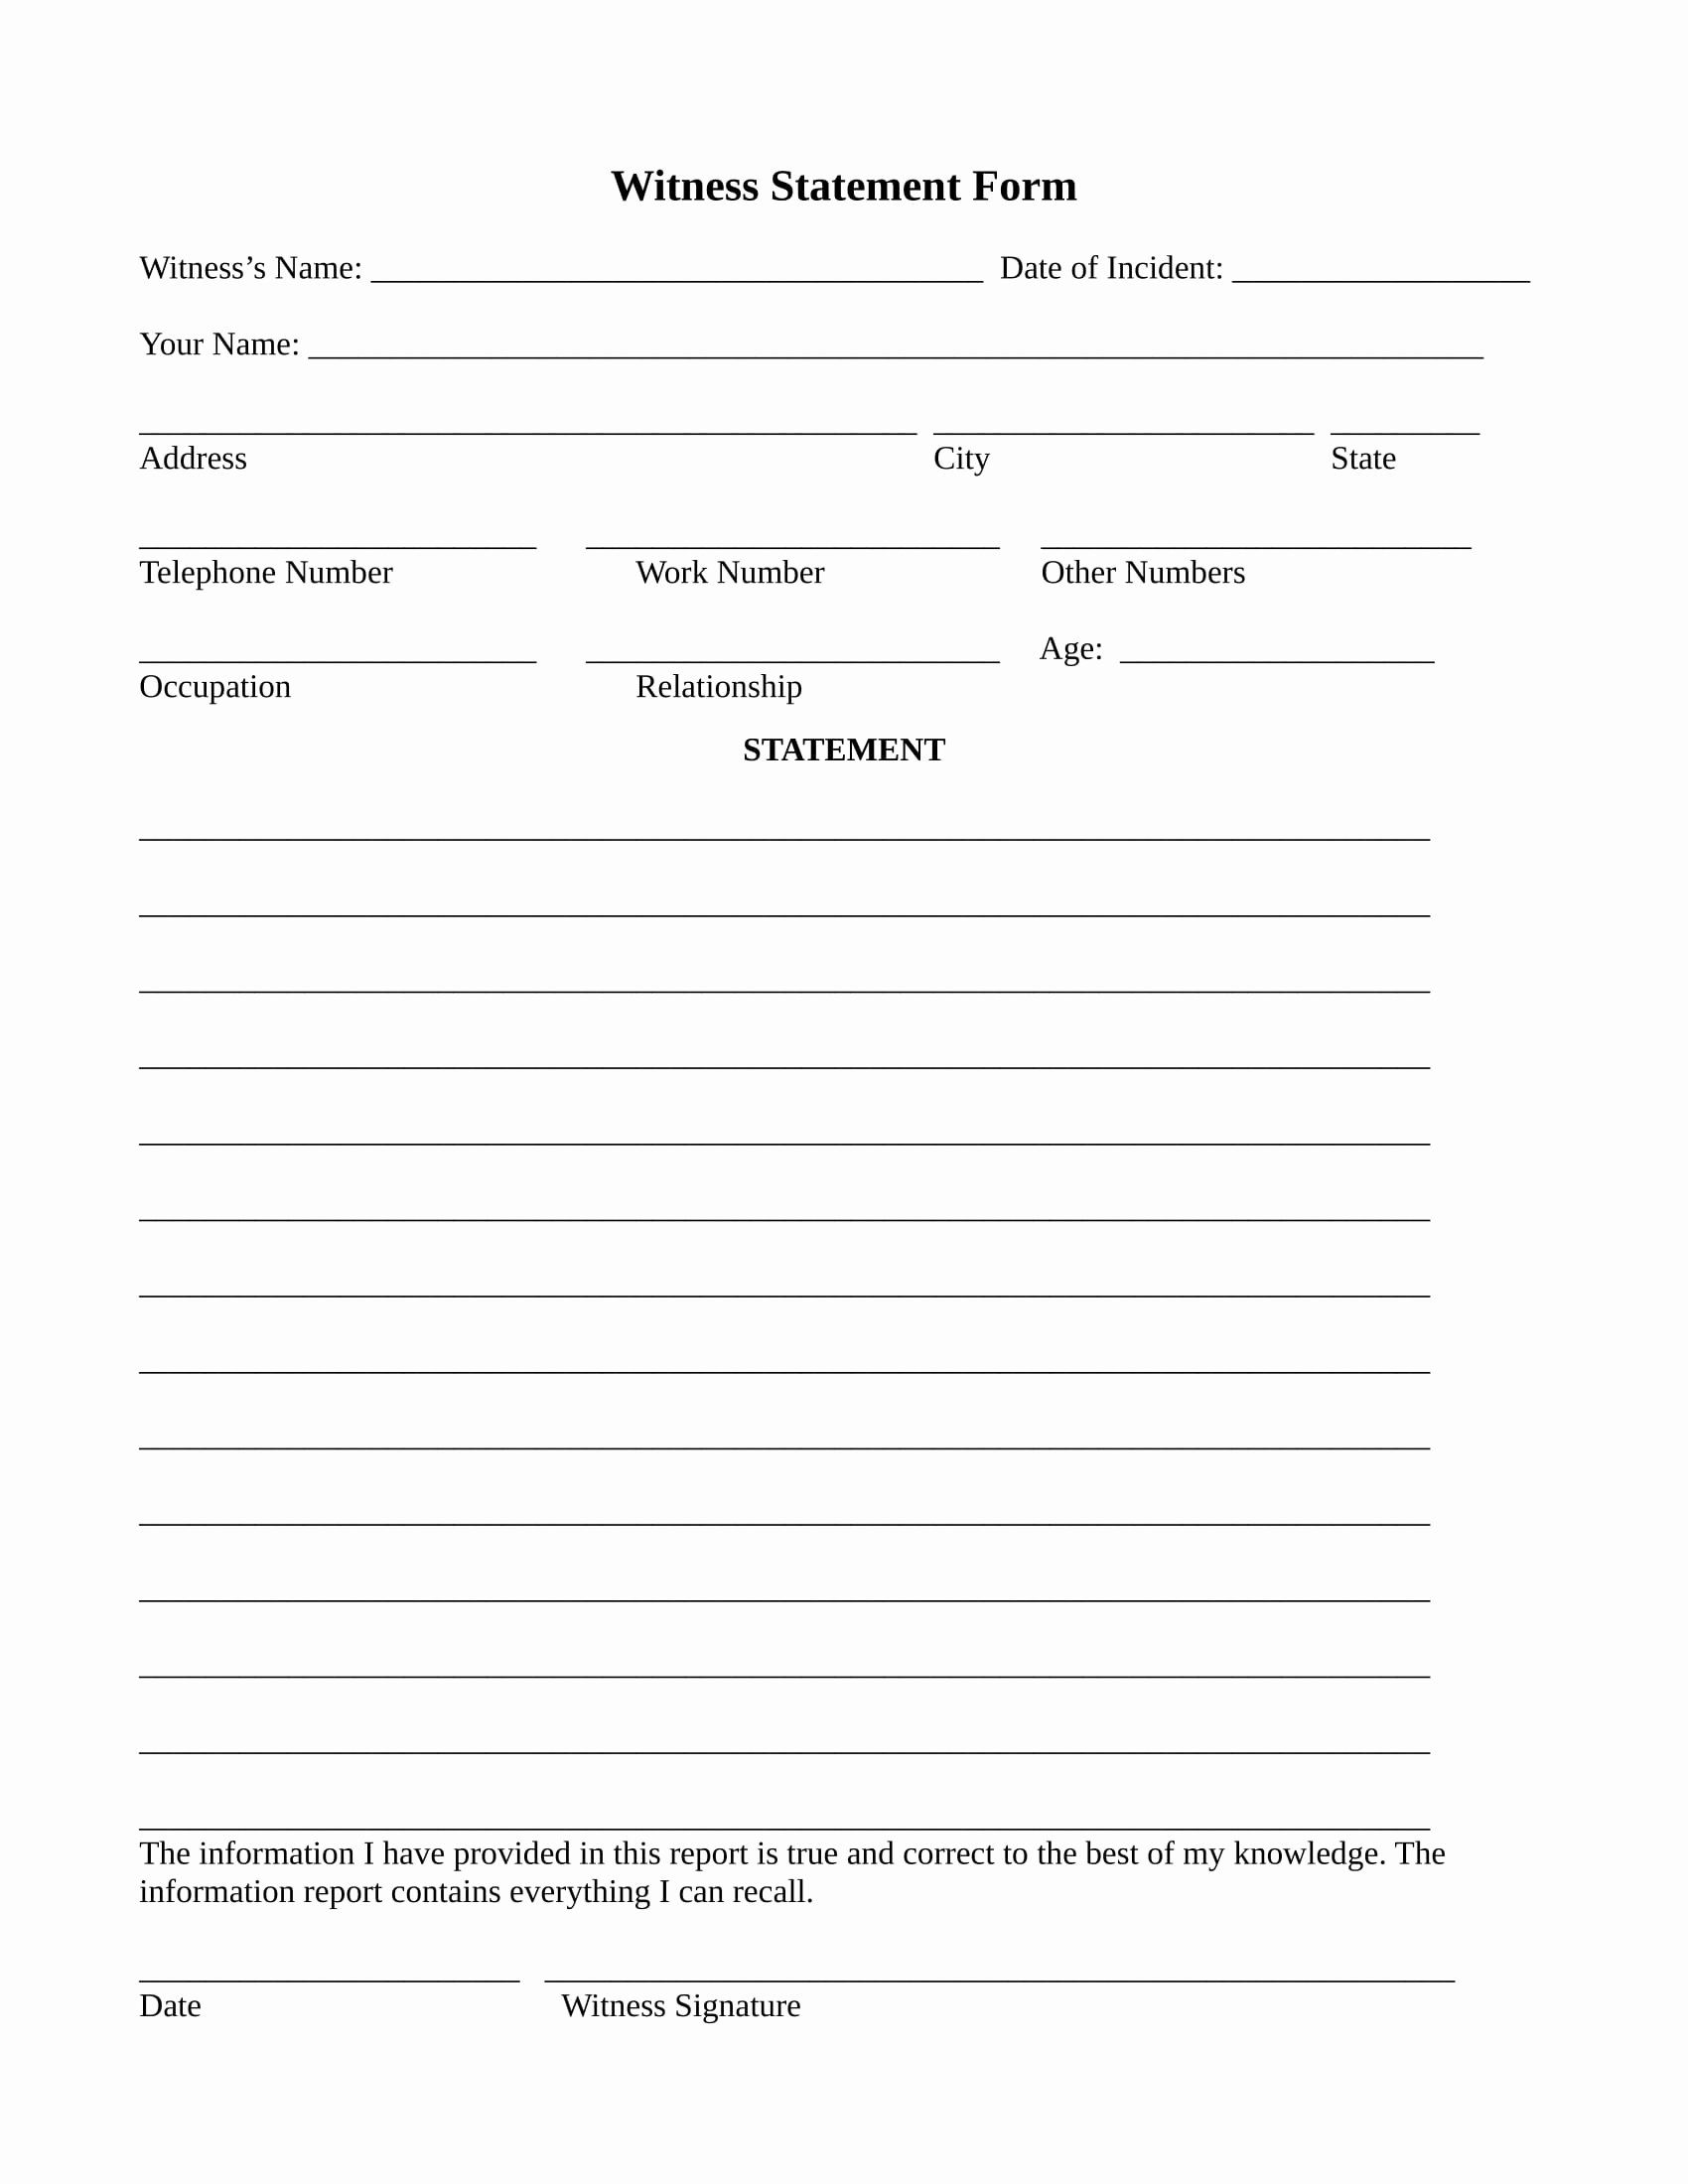 Witness Statement Template Word Beautiful Free 14 Employee Witness Statement forms In Word